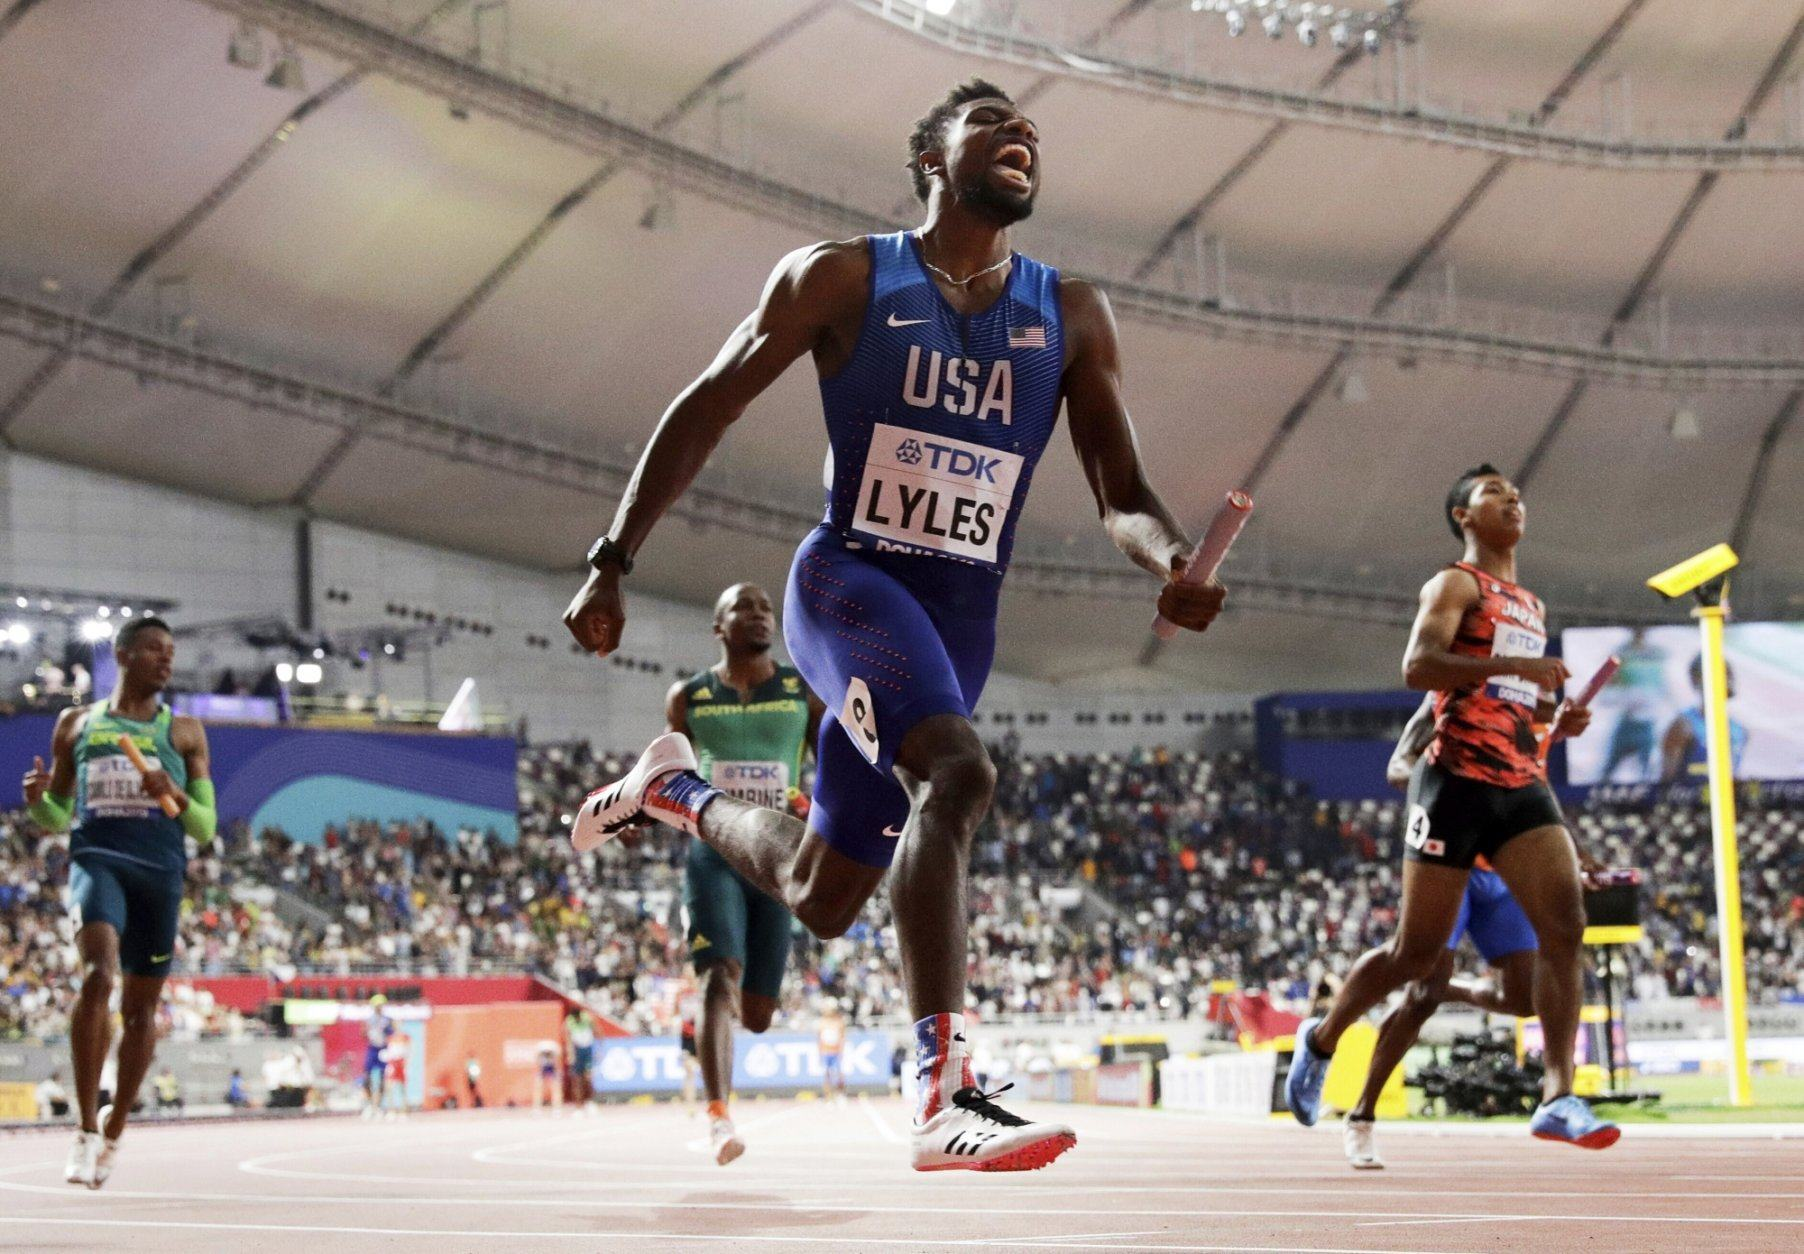 """<p><strong>Is Noah Lyles American track's next breakout star?</strong></p> <p>Speaking of 22-year-olds to know for next summer, if you don't already know who Noah Lyles is, now is the time to learn. The T.C. Williams alum is the top American sprinter heading into the 2020 Games, fresh off a <a href=""""https://www.youtube.com/watch?v=06Wpco4o9zs"""" target=""""_blank"""" rel=""""noopener"""">World Championship win in the 200 meters last year</a>. Lyles skipped the 100 meters at U.S. Nationals in 2019, but he's expected to run both in Tokyo, and will be a medal stand contender — if not the outright favorite — at both distances.</p>"""